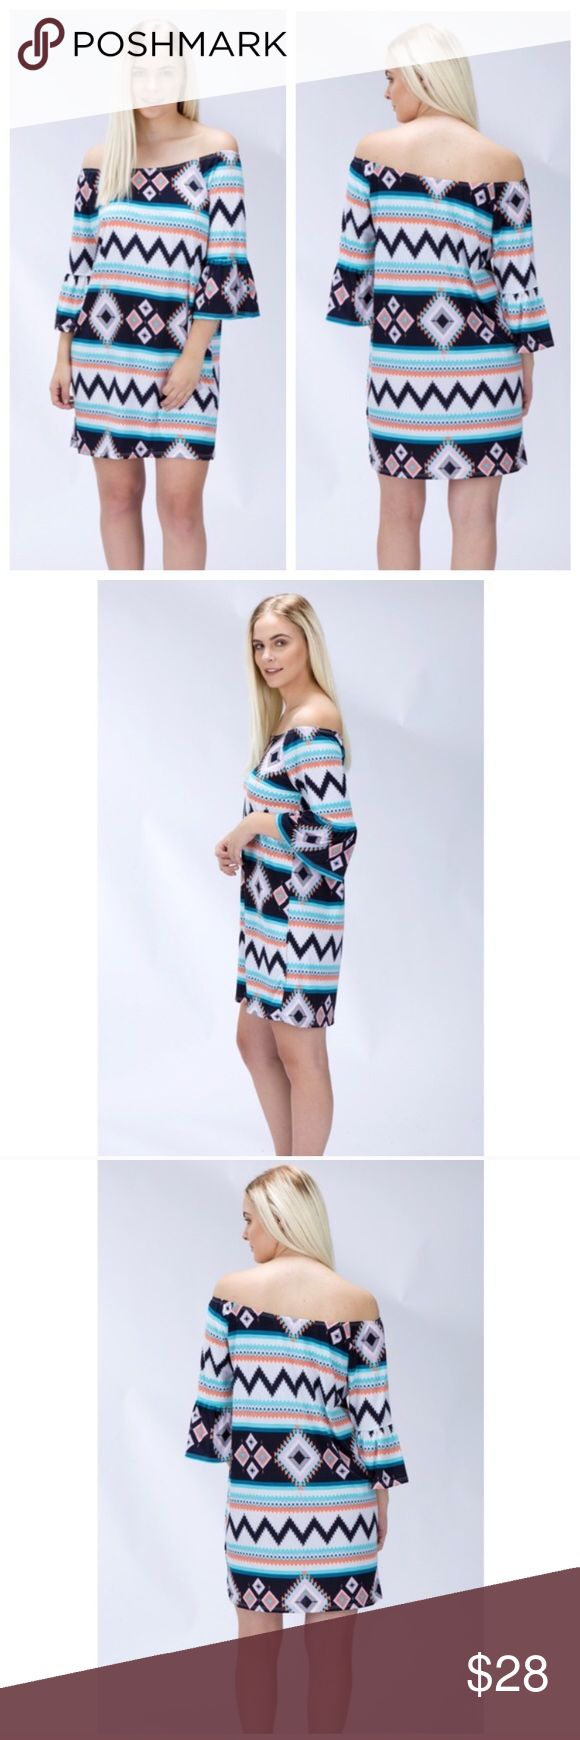 Off Shoulder Tribal Print Dress Perfect dress for spring and summer occasions! 95% polyester and 5% spandex! Length from armpit down is 24 inches! Dresses Mini